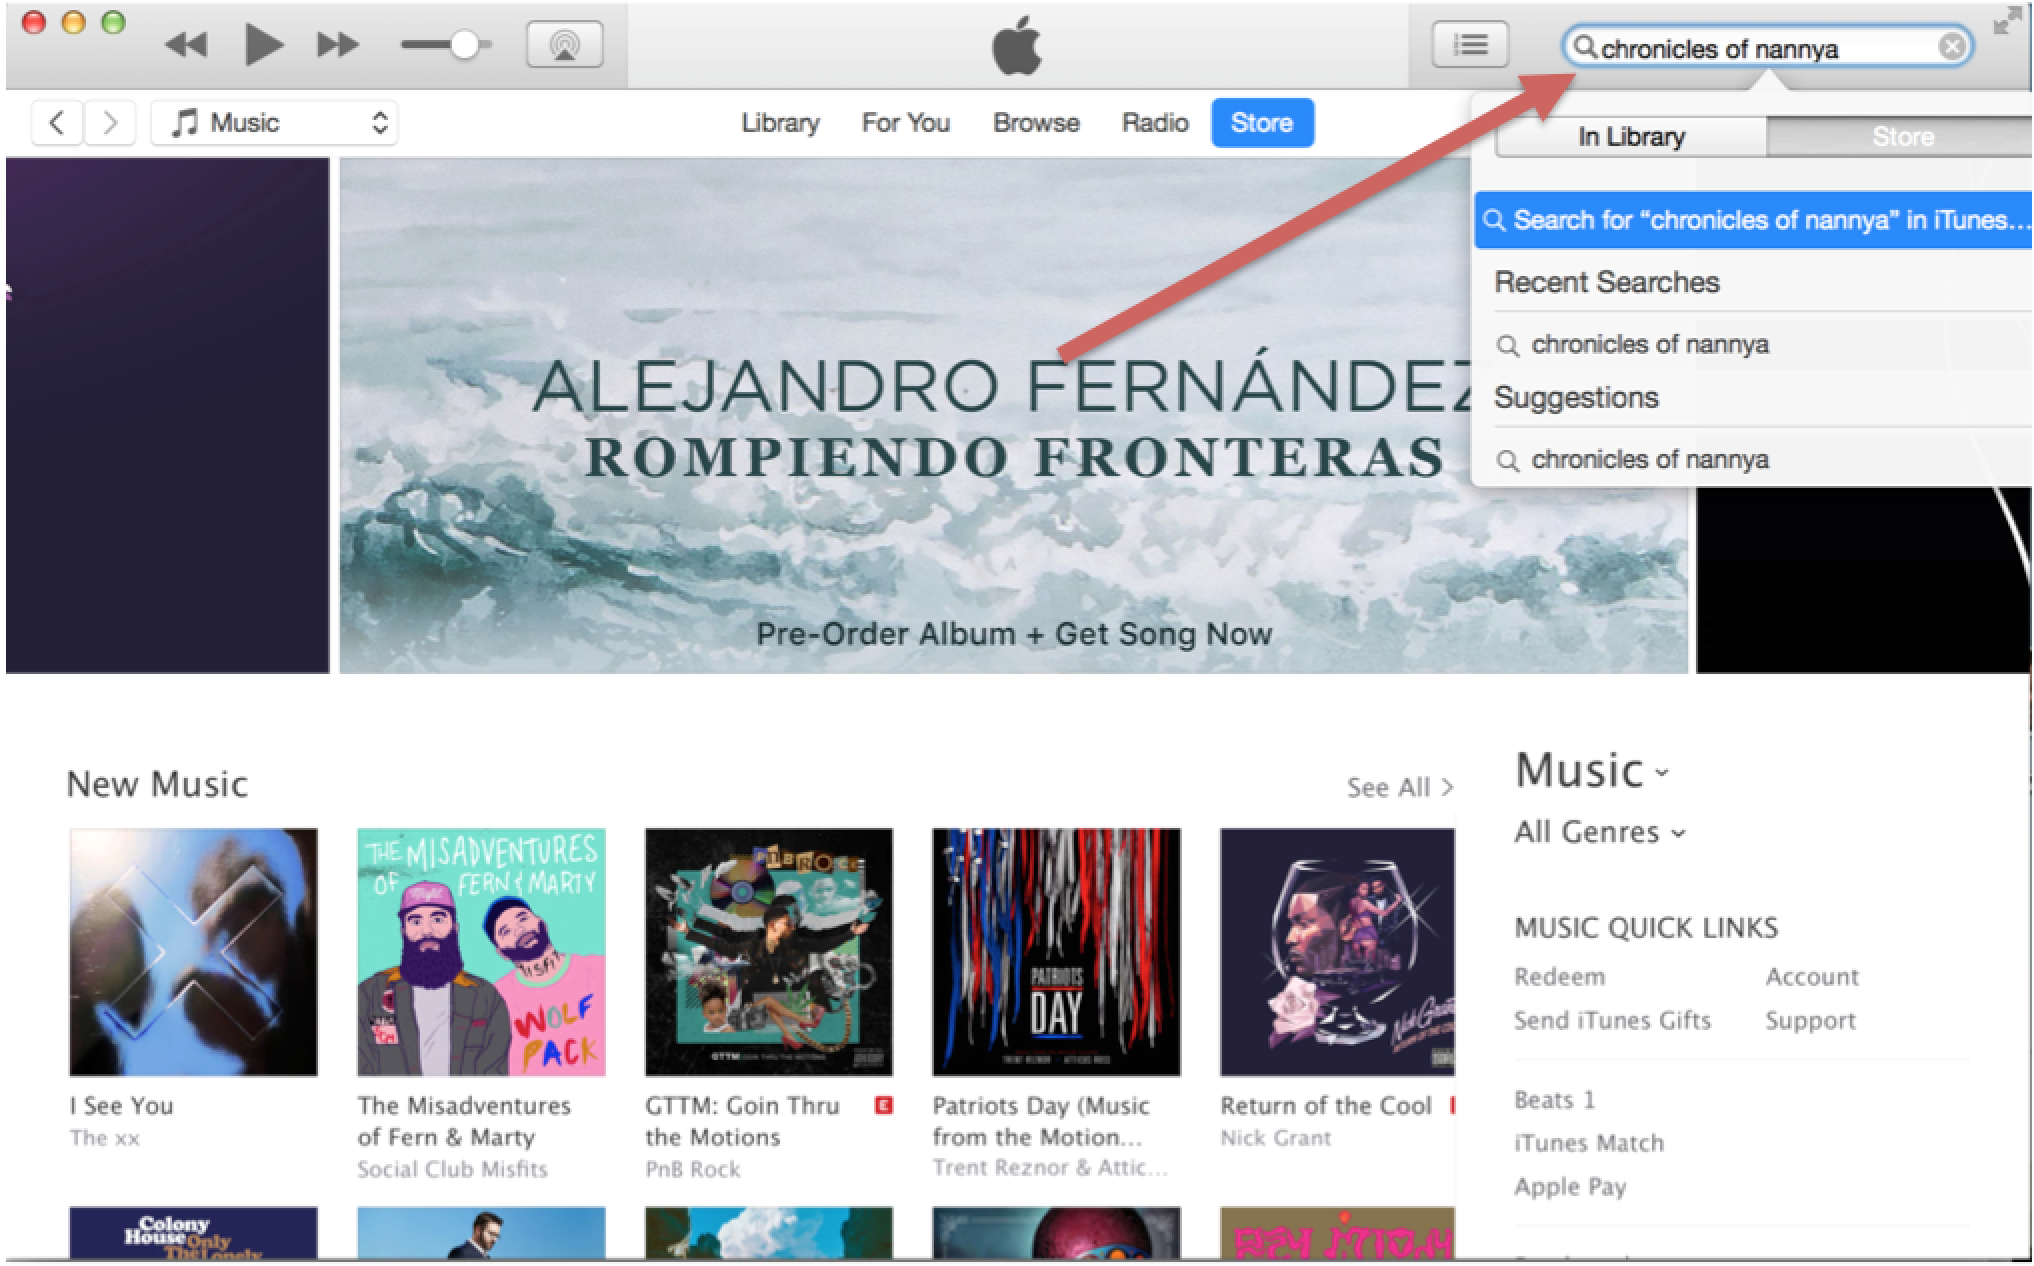 Step 3  Click on the correct item in the search results to be taken to its iTunes page.